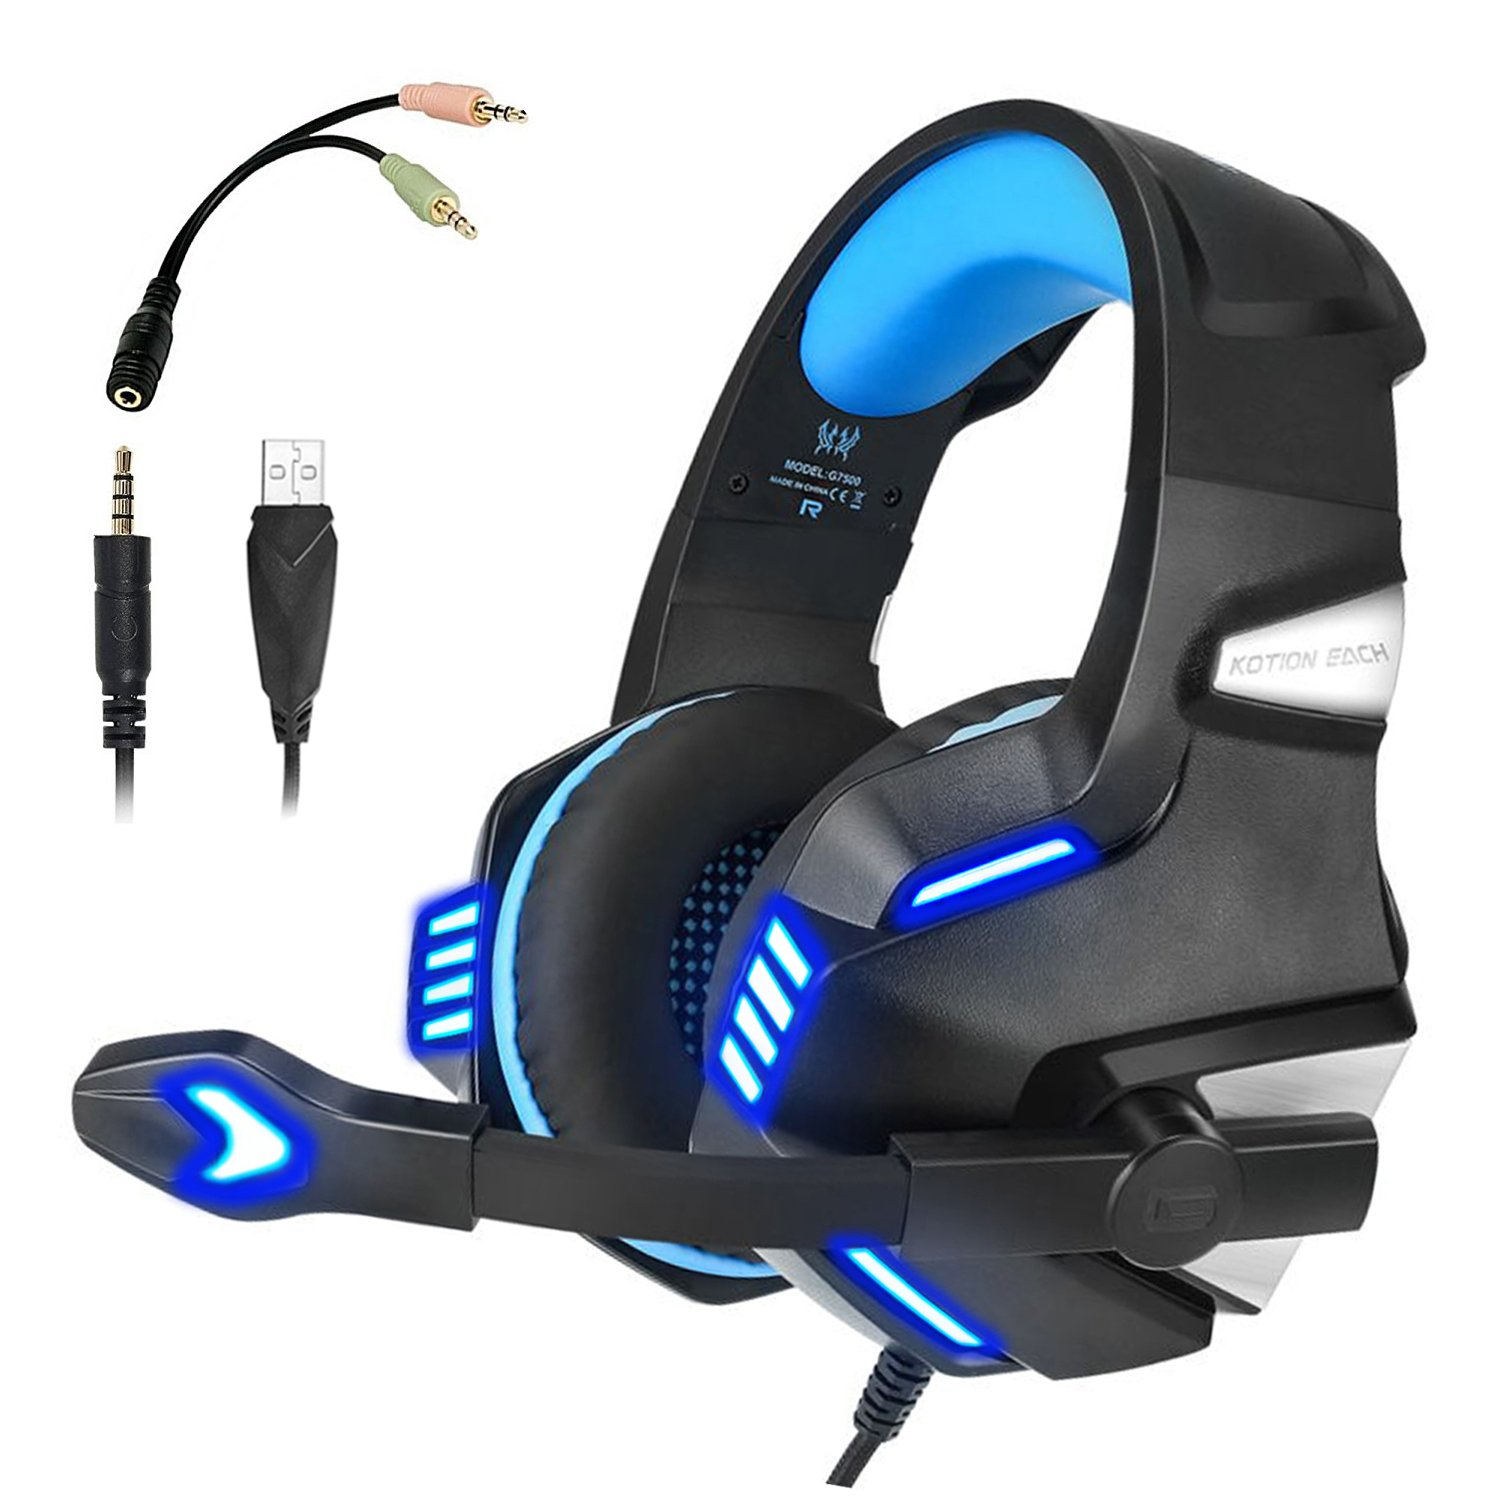 KJ-KayJI Gaming Headset for PS4 Xbox One Over Ear Gaming Headphones with Mic Stereo Bass Surround Noise Reduction,LED Lights and Volume Control for Laptop PC Mac IPad Computer Smartphones Xbox (Blue)